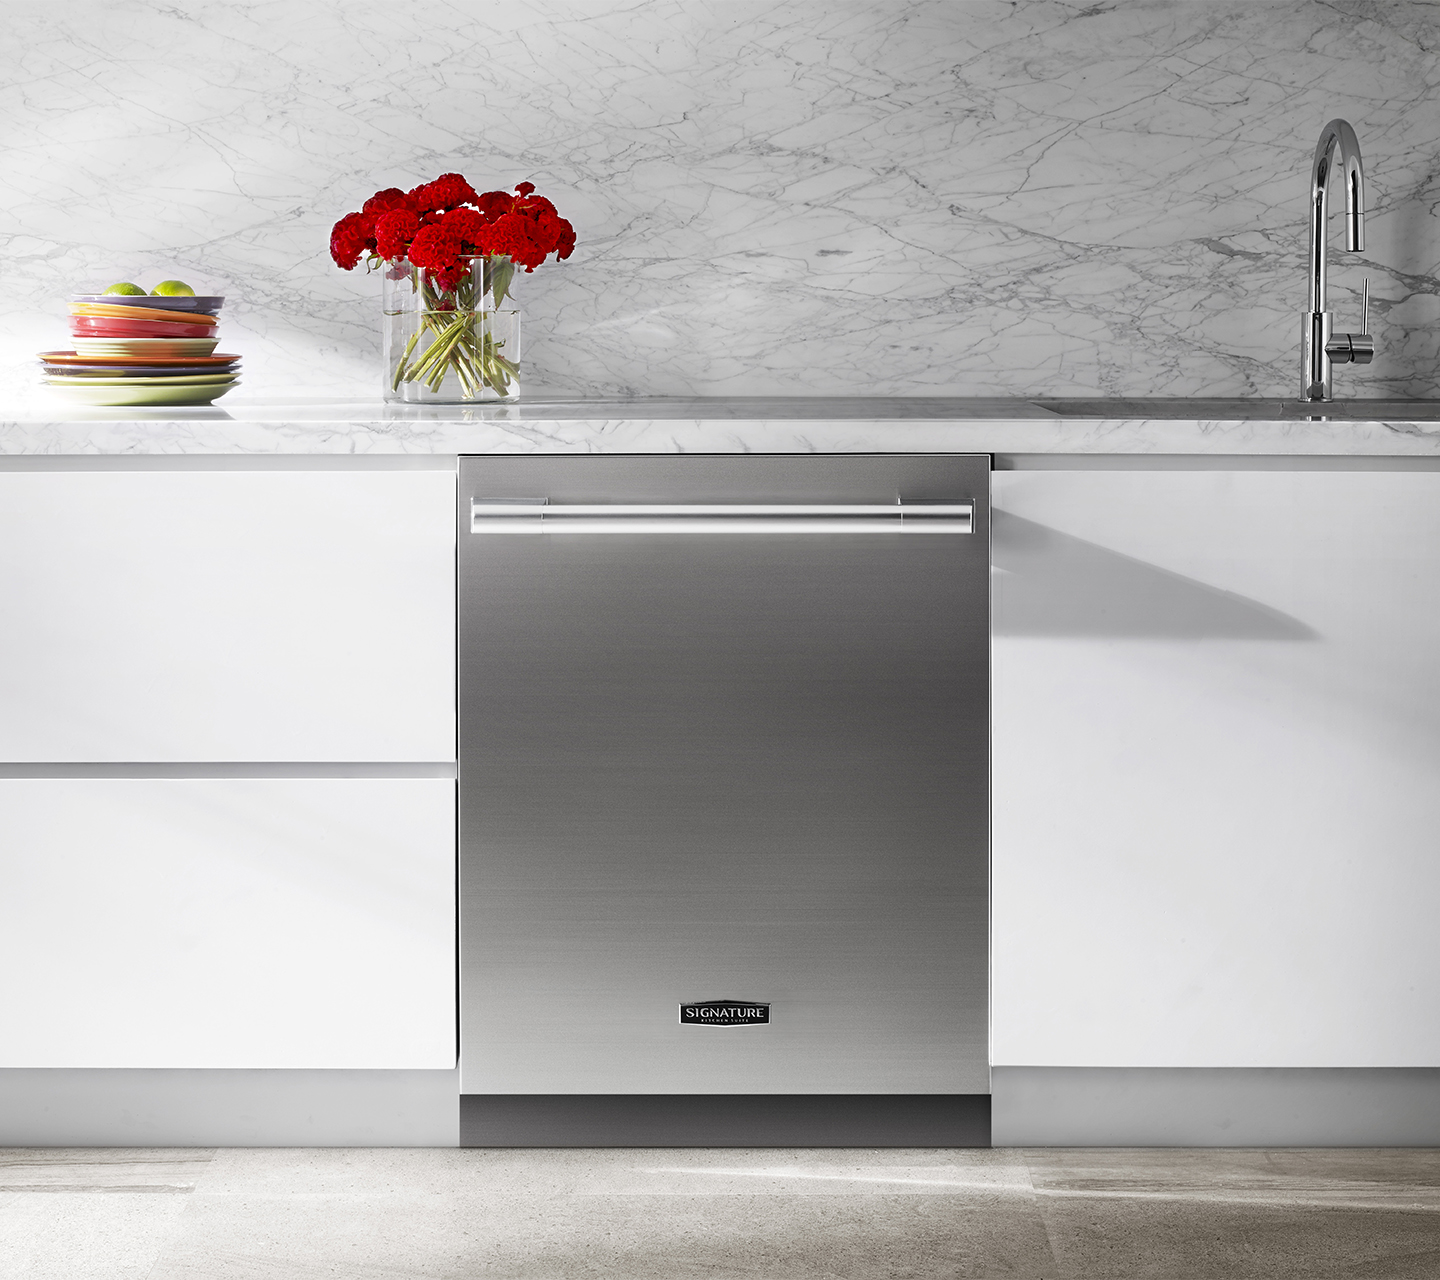 Stainless Steel Dishwasher from Signature Kitchen Suite